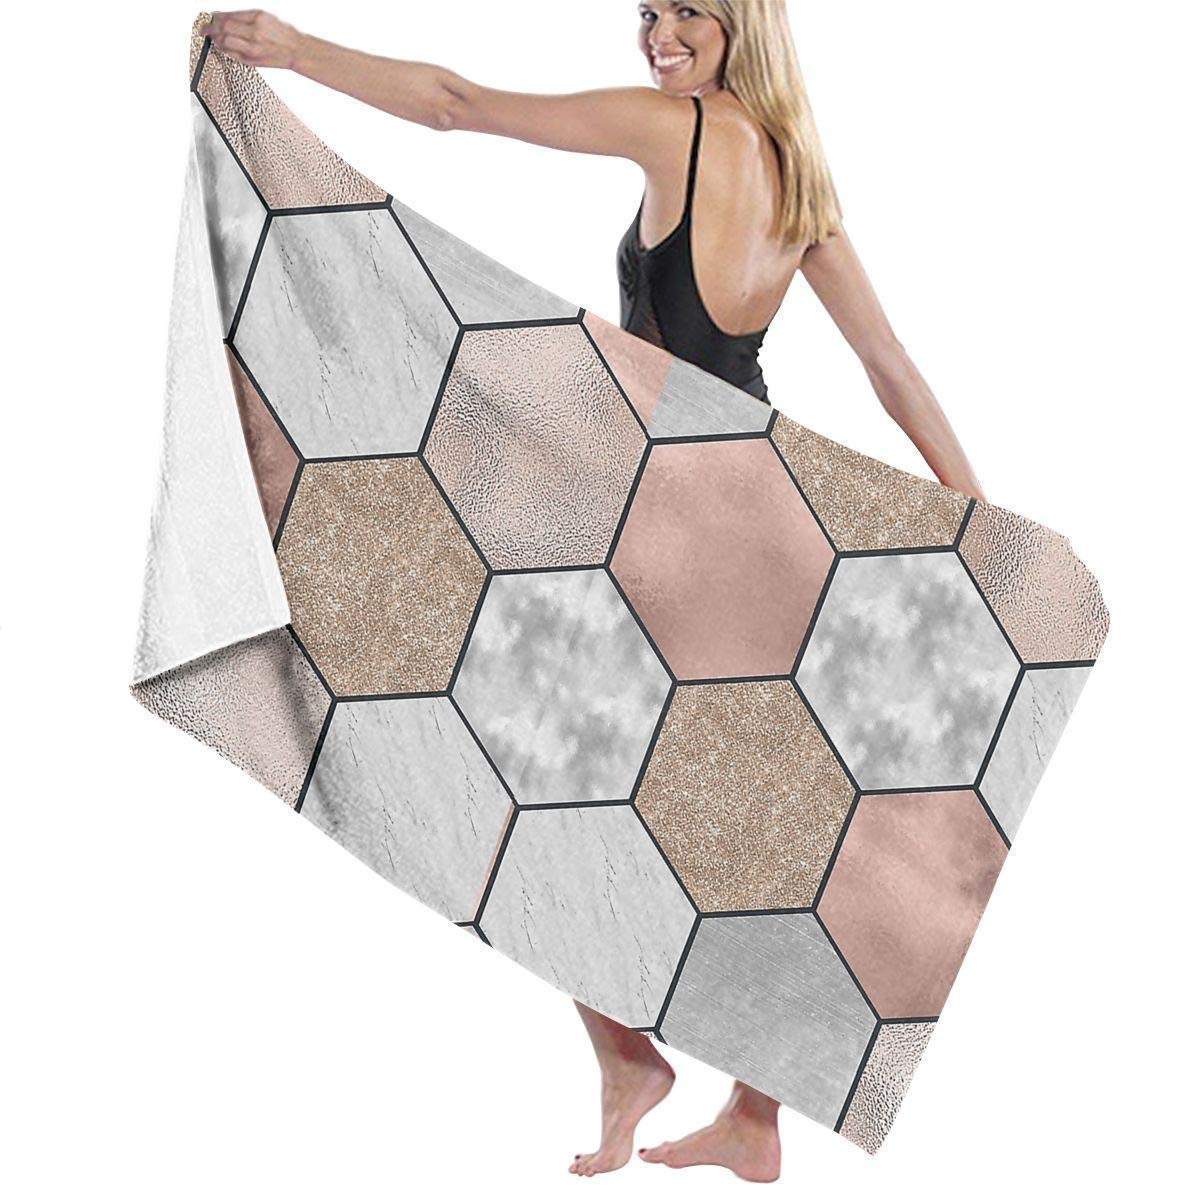 Biooker Bath Towel Gentle Rose Gold and Marble Hexagons Adult Microfiber Beach Towel Oversized 31x51 Inch Highly Absorbent Multipurpose Use Bath Sheet for Gym Beach SWM Spa